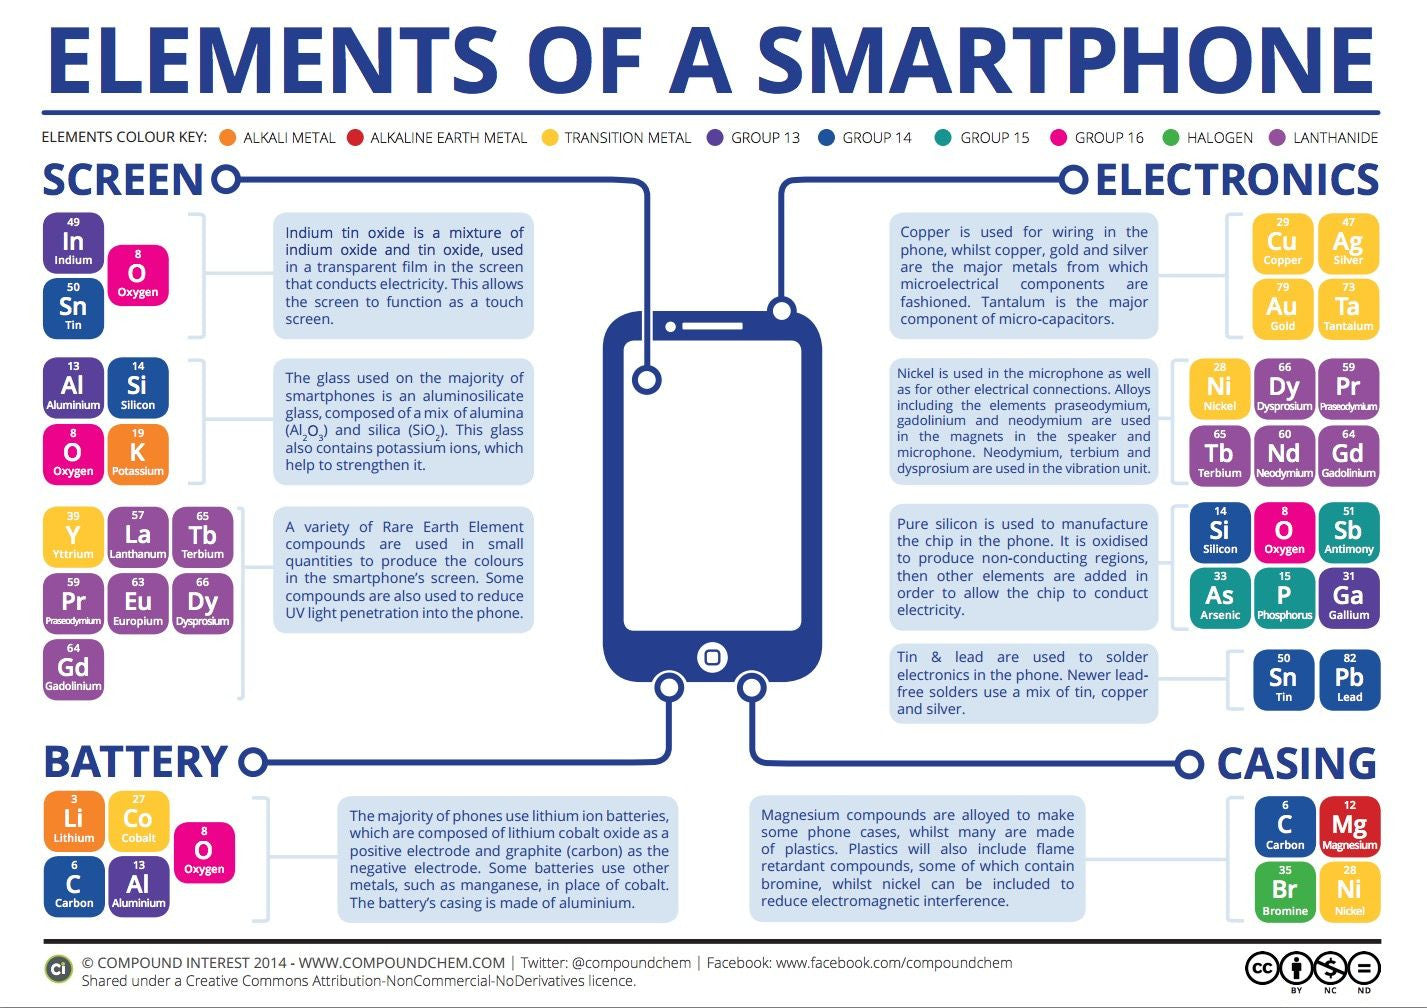 Breakdown of smartphone materials and chemicals